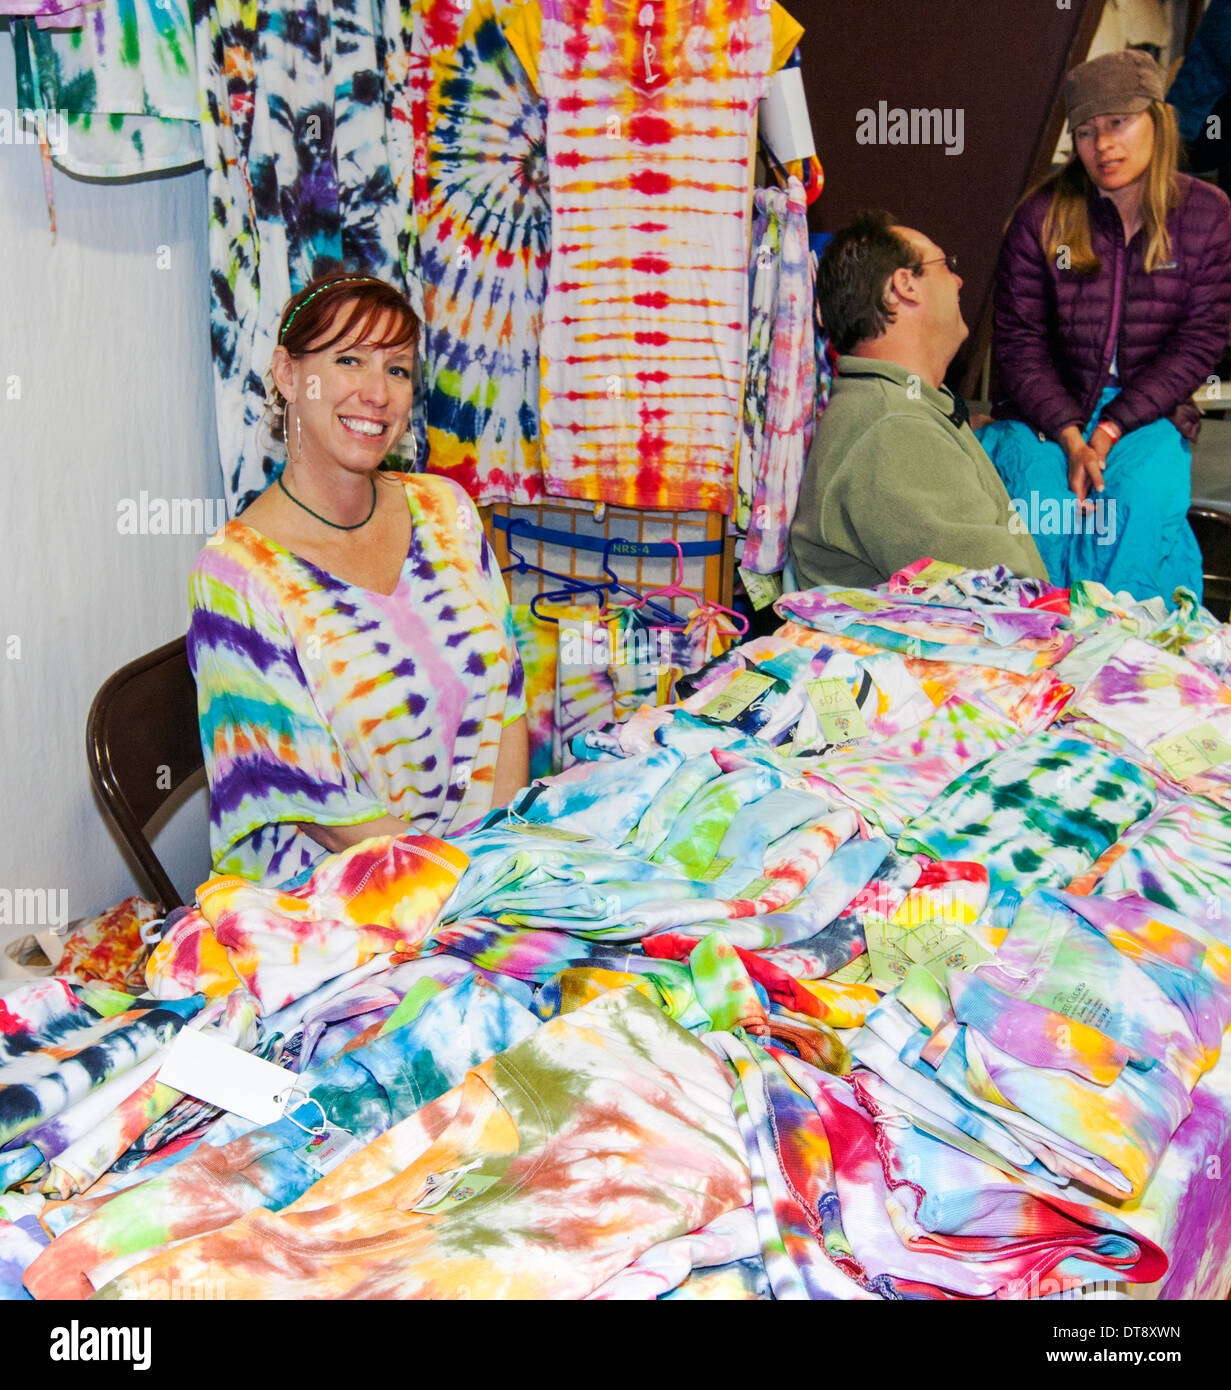 Vendor selling tie-dyed tee shirts at the Ark Valley HIgh Rollers Roller Derby, Chaffee County Fairgrounds, Colorado, - Stock Image